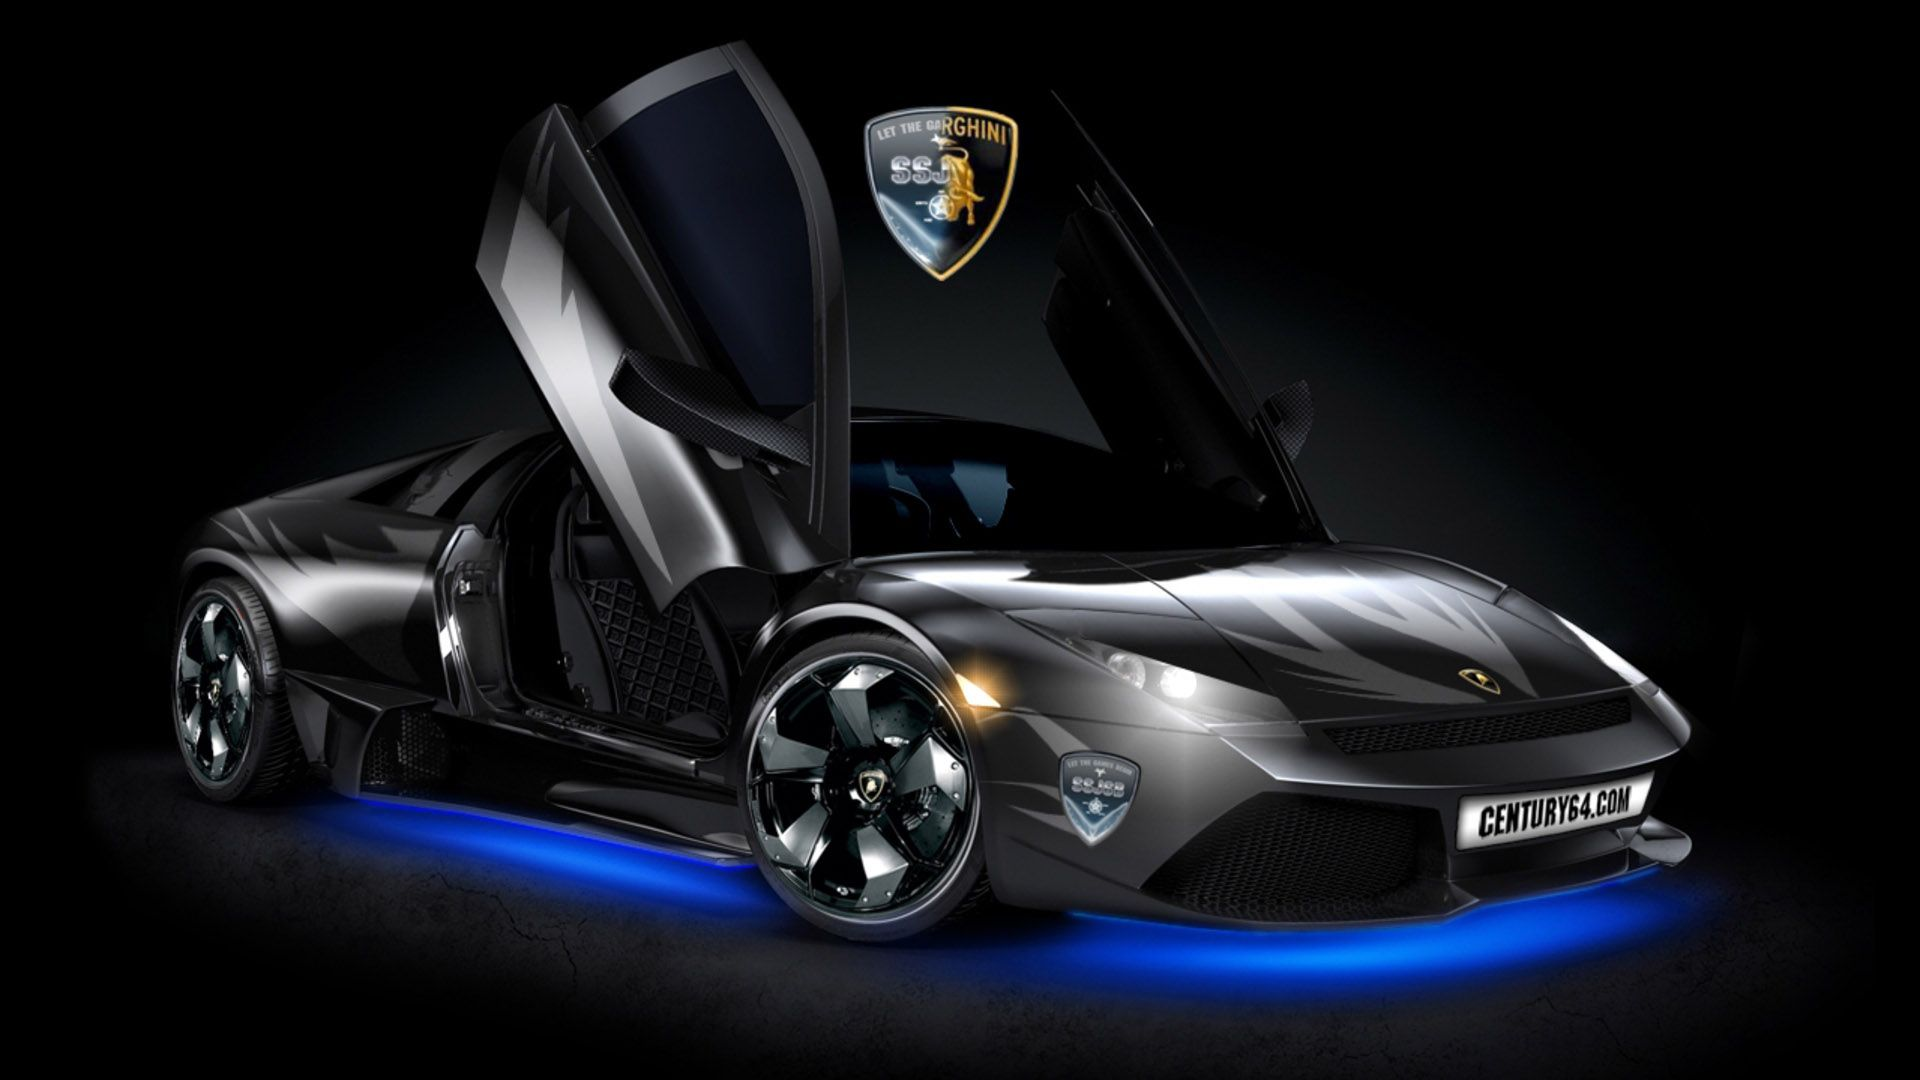 Lamborghini Cars Wallpapers Find Best Latest Lamborghini Cars